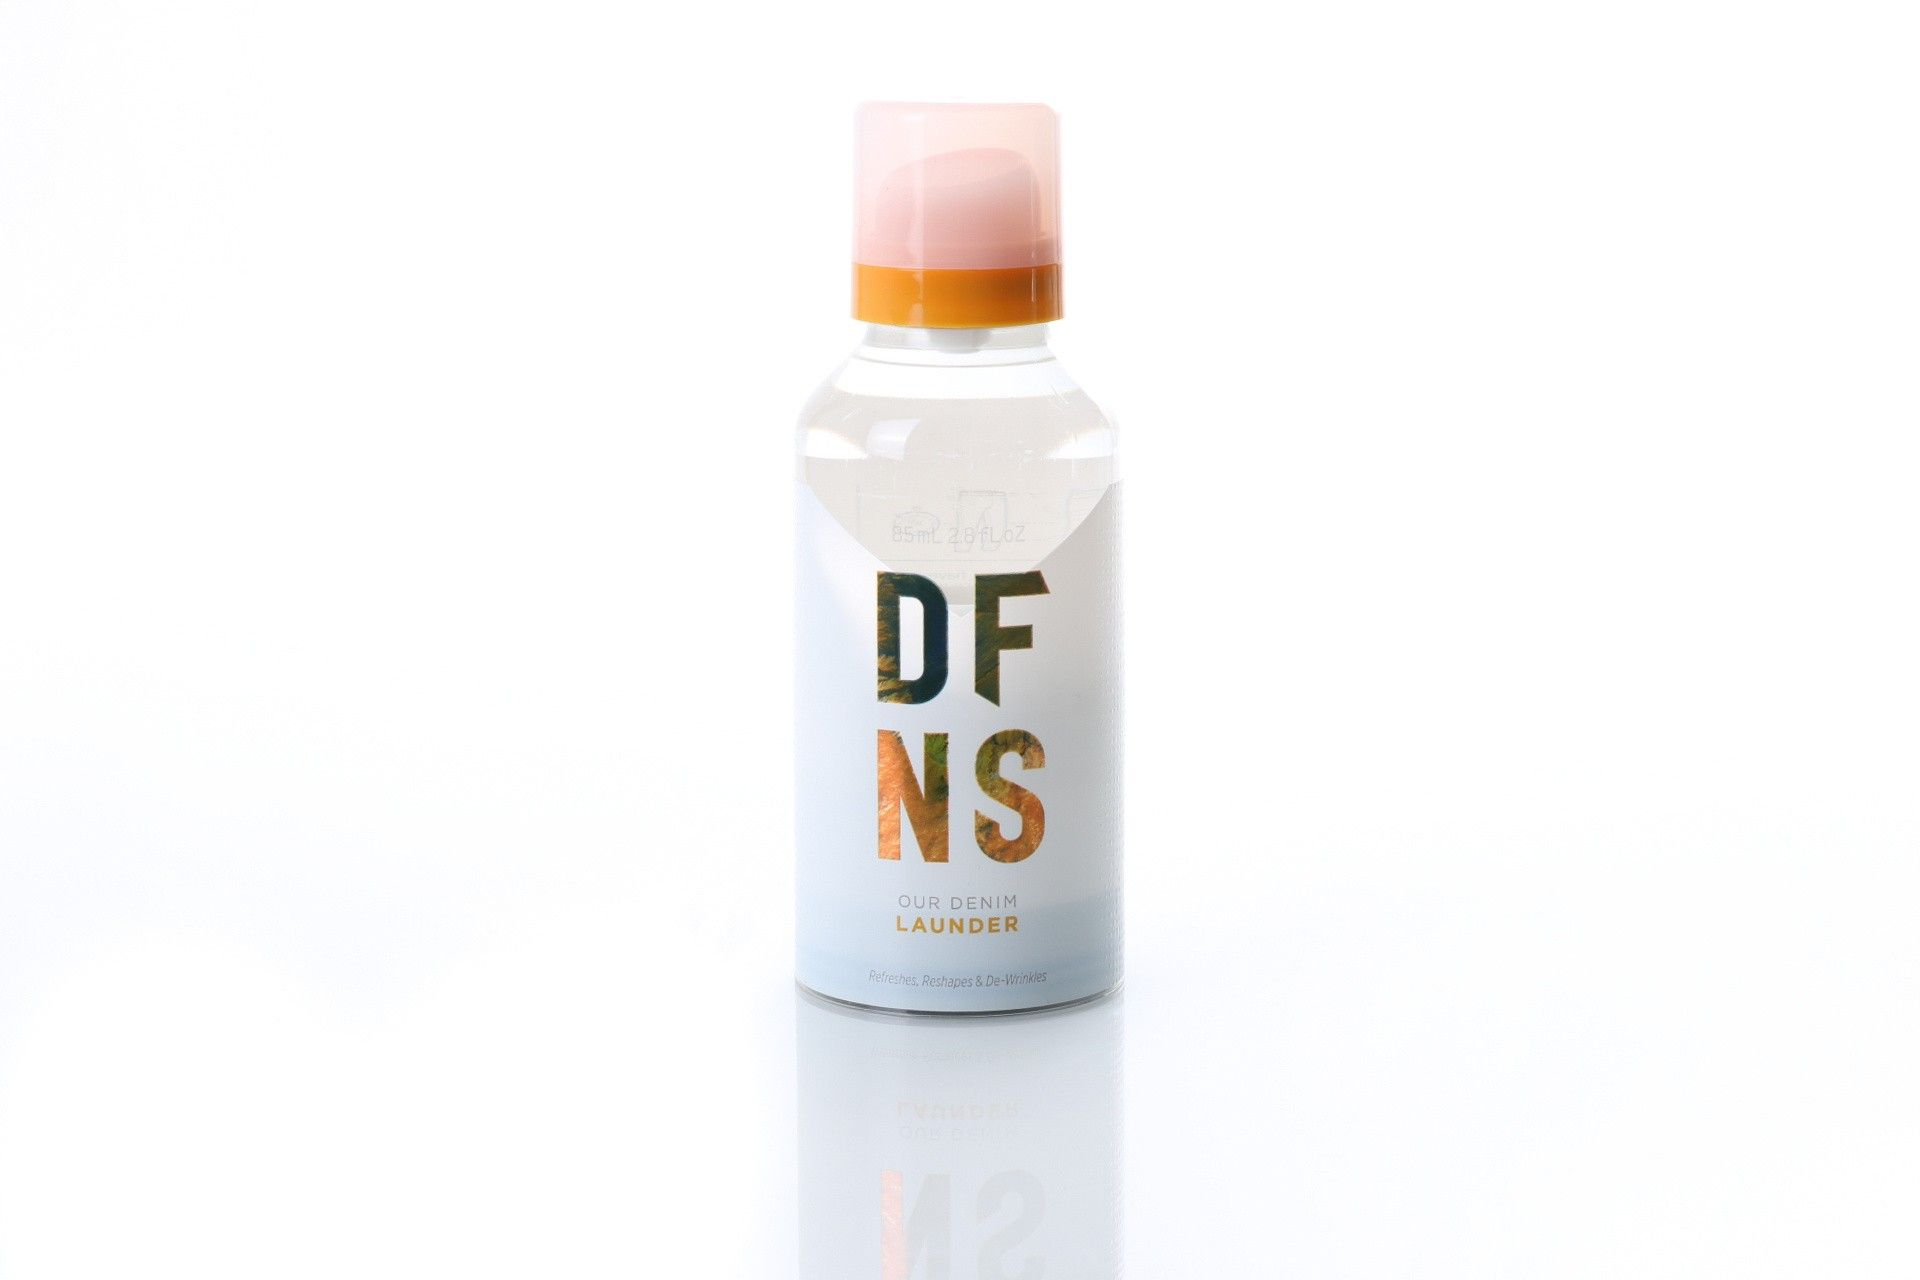 Afbeelding van DFNS Onderhoud DFNS Denim Refresher - Flight, 85 ml x 2191002